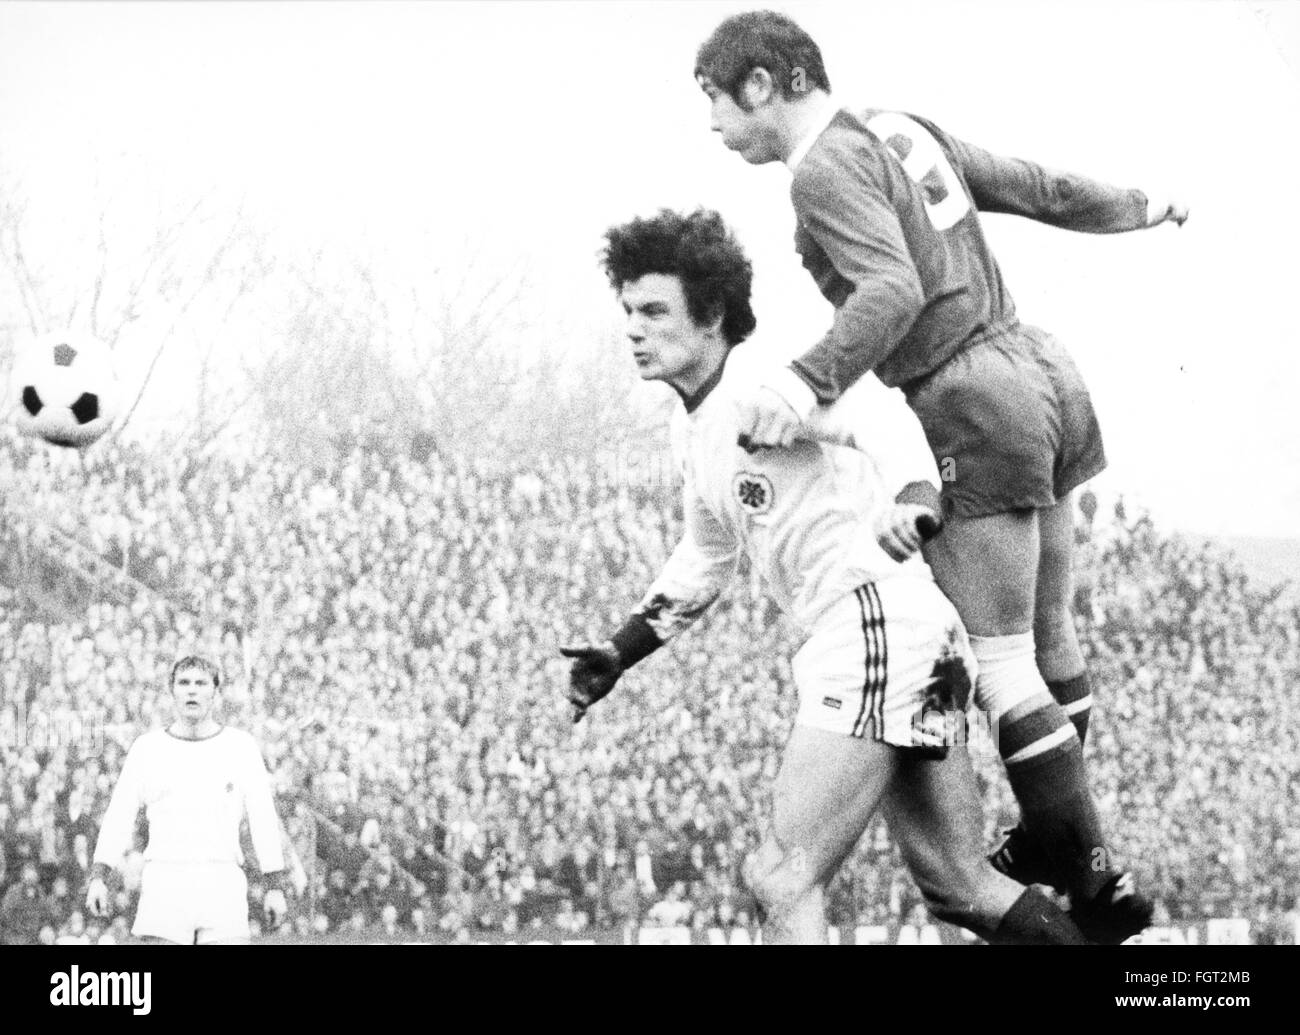 sports, football, games Germany, national league, season 1970 / 1971, 14th match day, game FC Schalke 04 versus - Stock Image